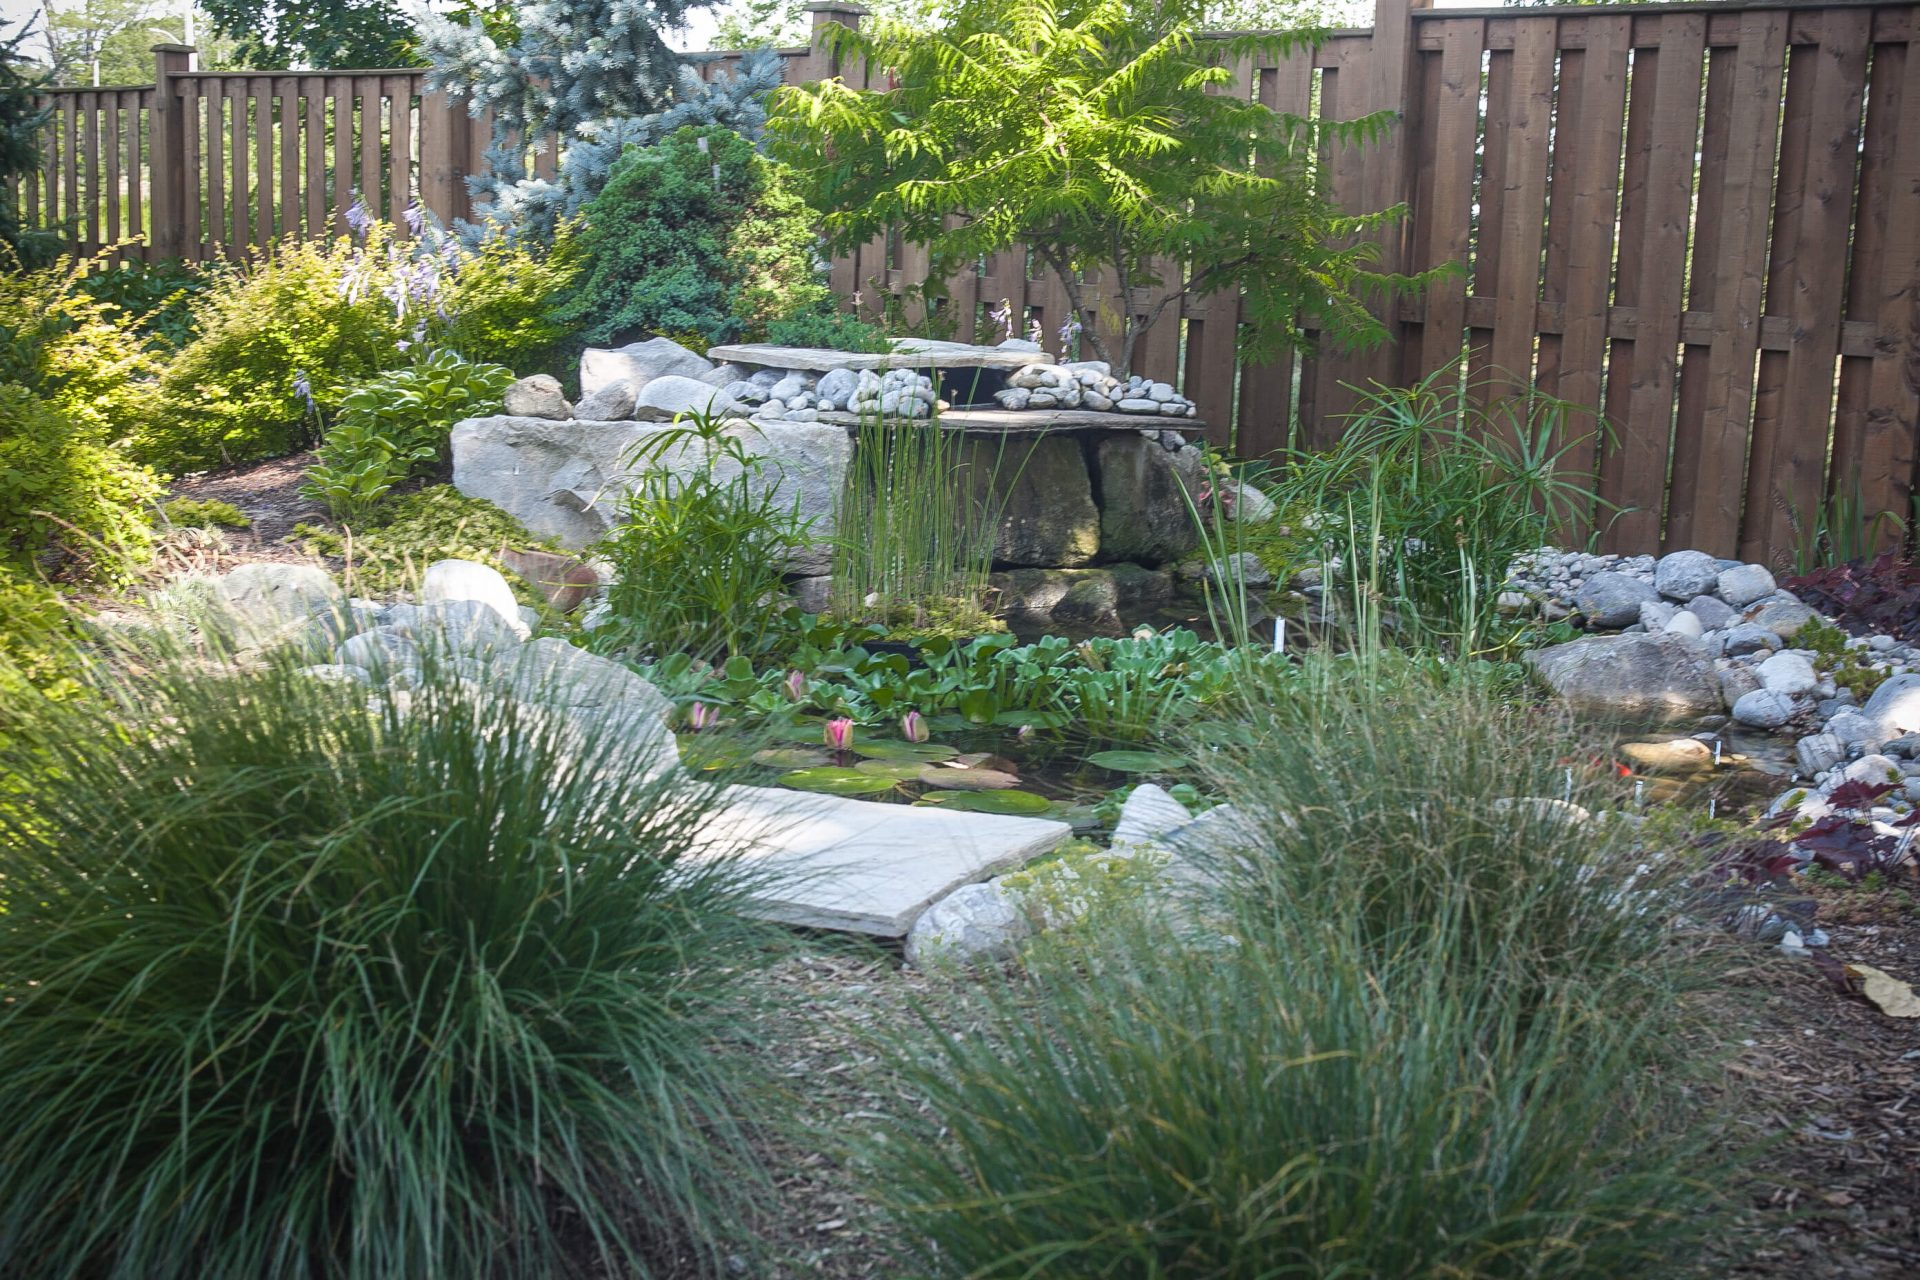 Small lily pond featured in garden